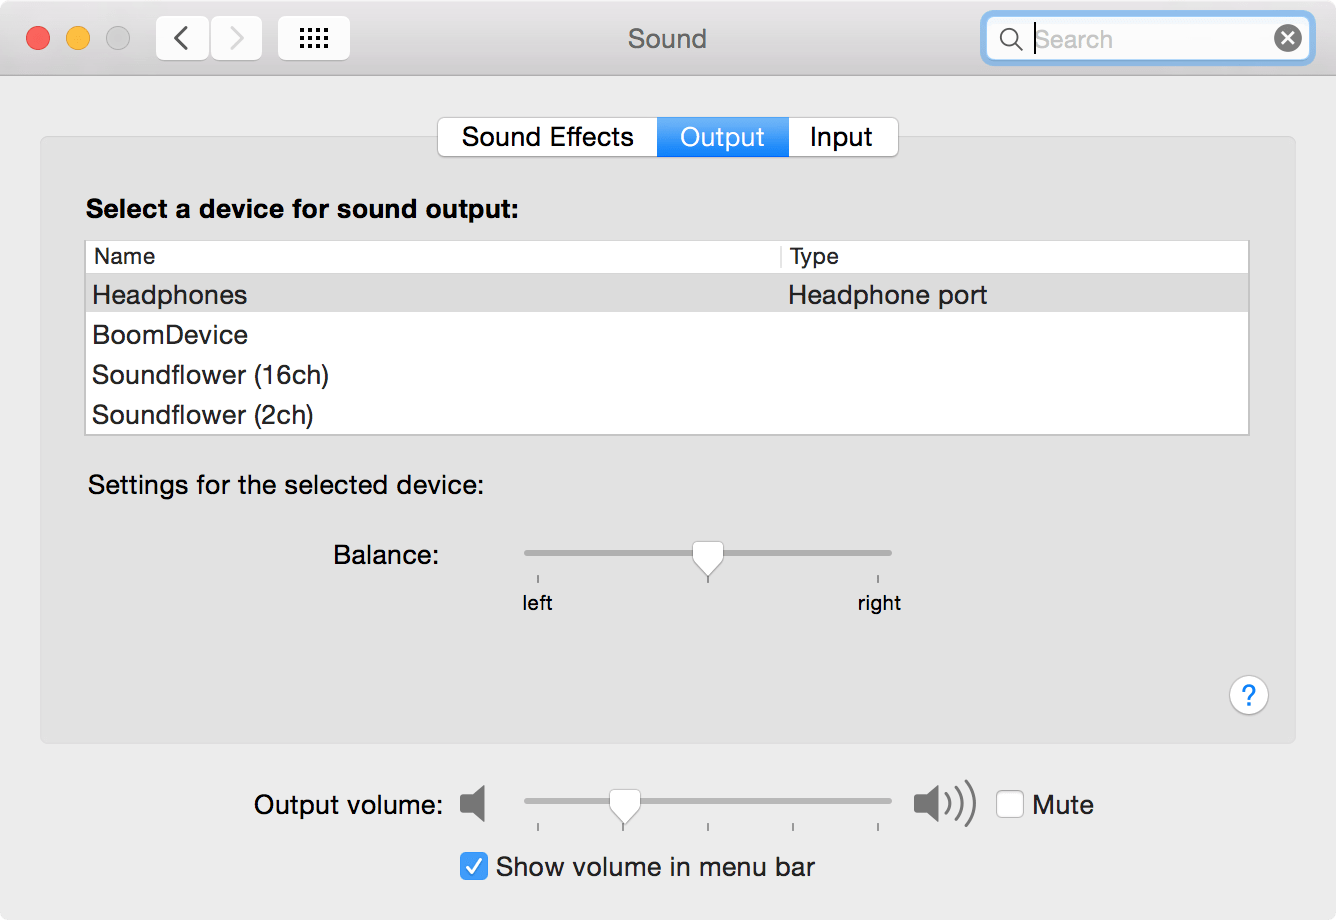 hight resolution of  in system preferences sound output the selected output remains stuck on headphones even when they re unplugged